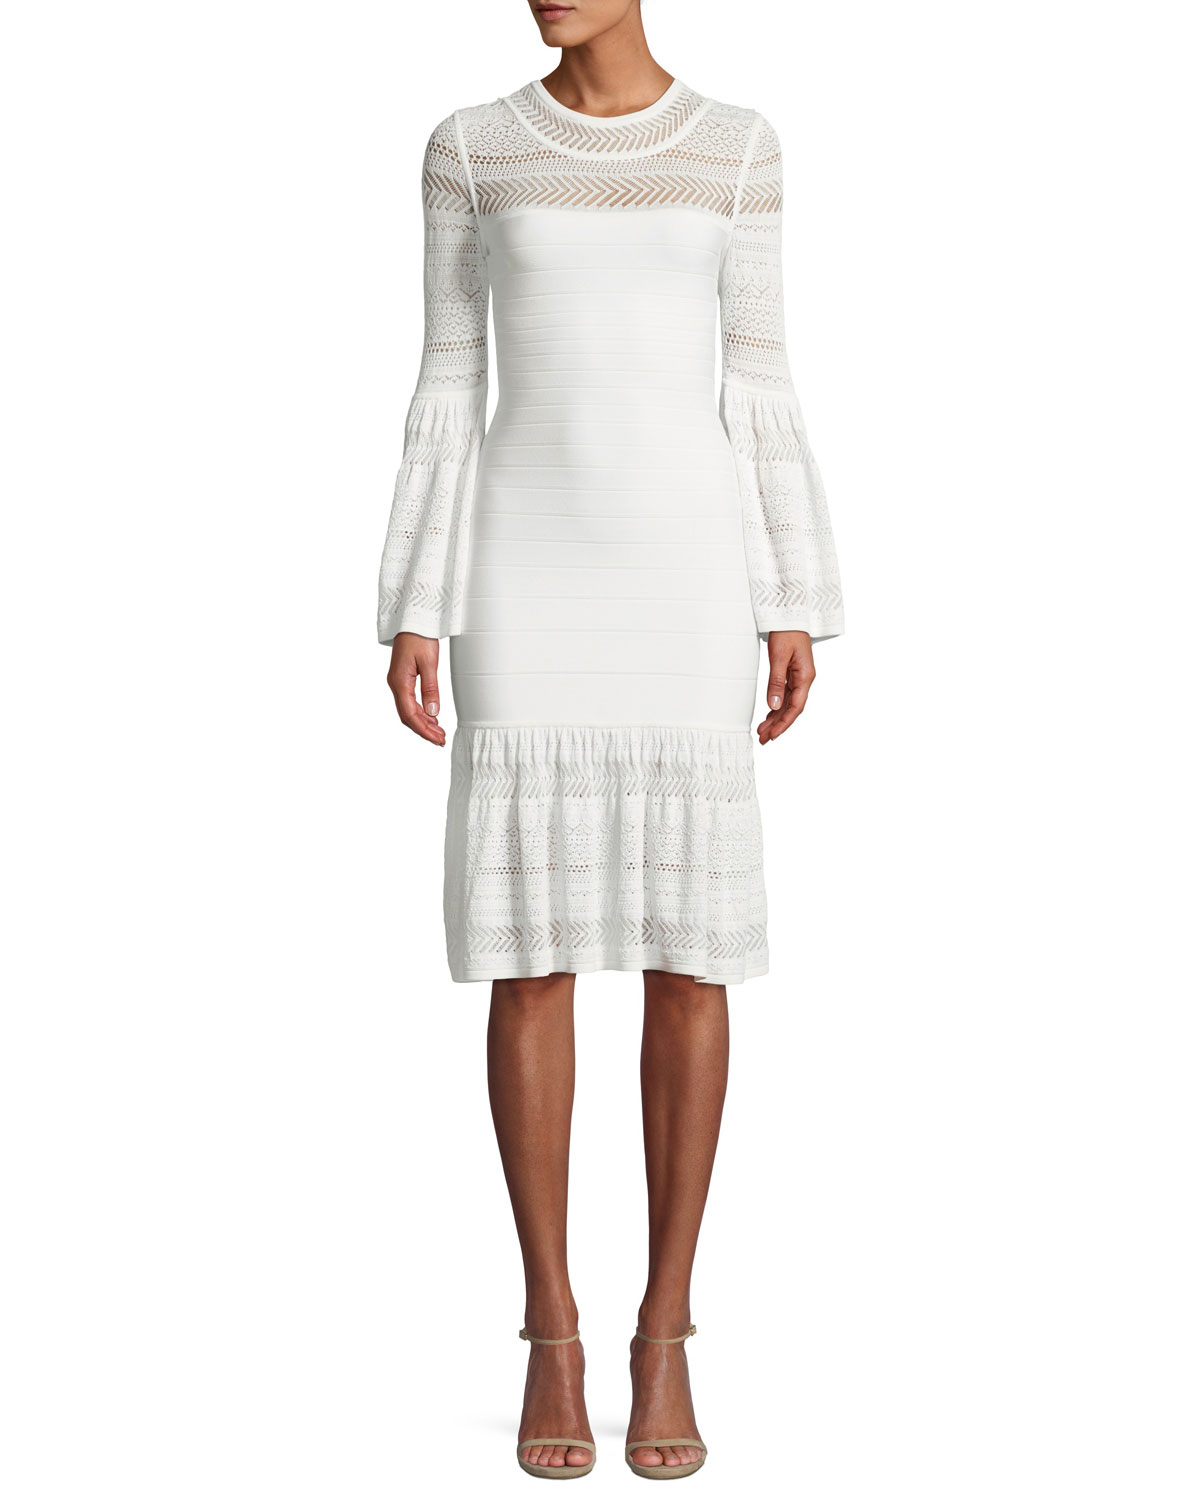 782715dfaf71 Herve Leger Bell-Sleeve Bandage Knit Dress